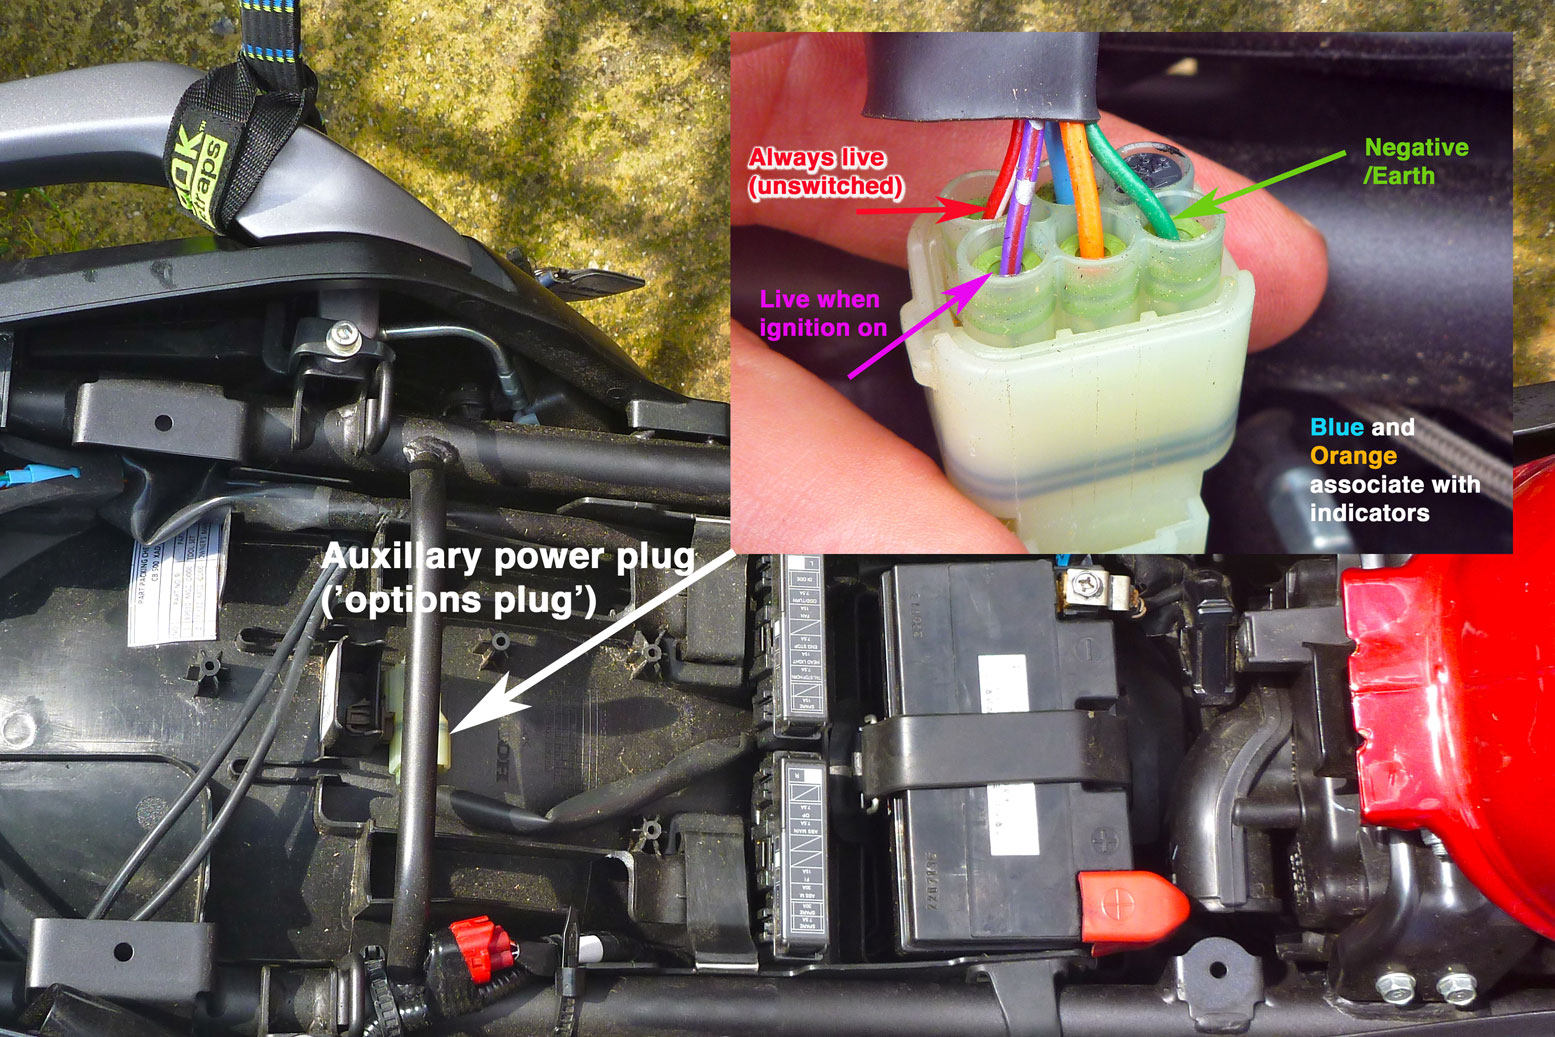 Cb500x Auxillary Power Satnav Mount Yamaha Wr250r Wiring Diagram But On The Cb X Forum Someone Unearthed A Stray Options Plug Under Seat Left That Does Just And So Is Ideal For Electrical Accessories